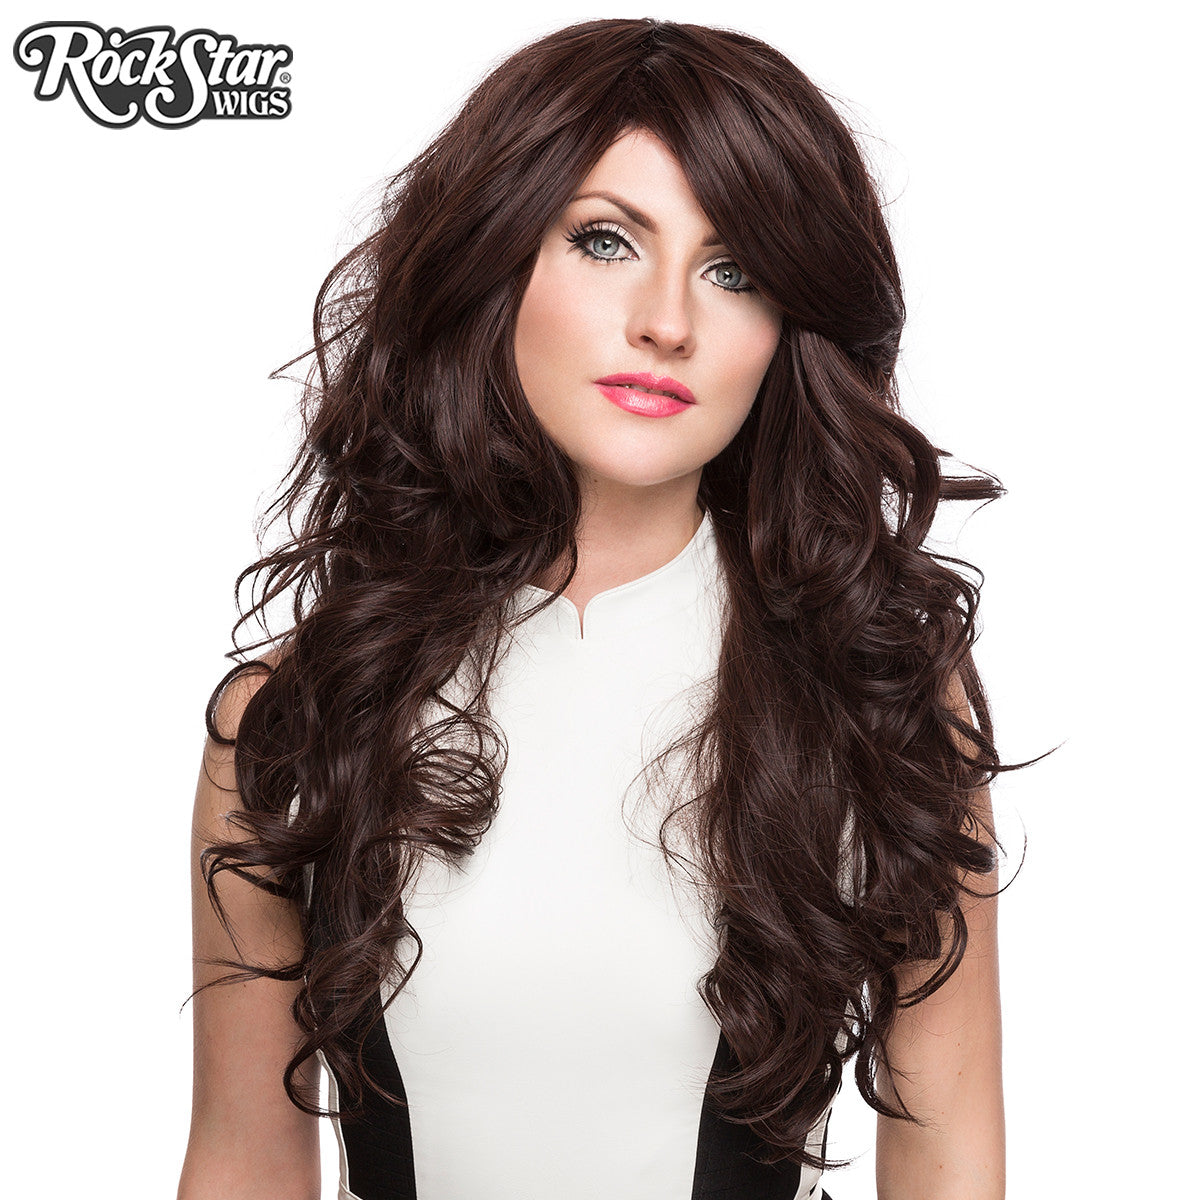 Rockstar Wigs 174 Farrah Collection Femme Fatale 00171